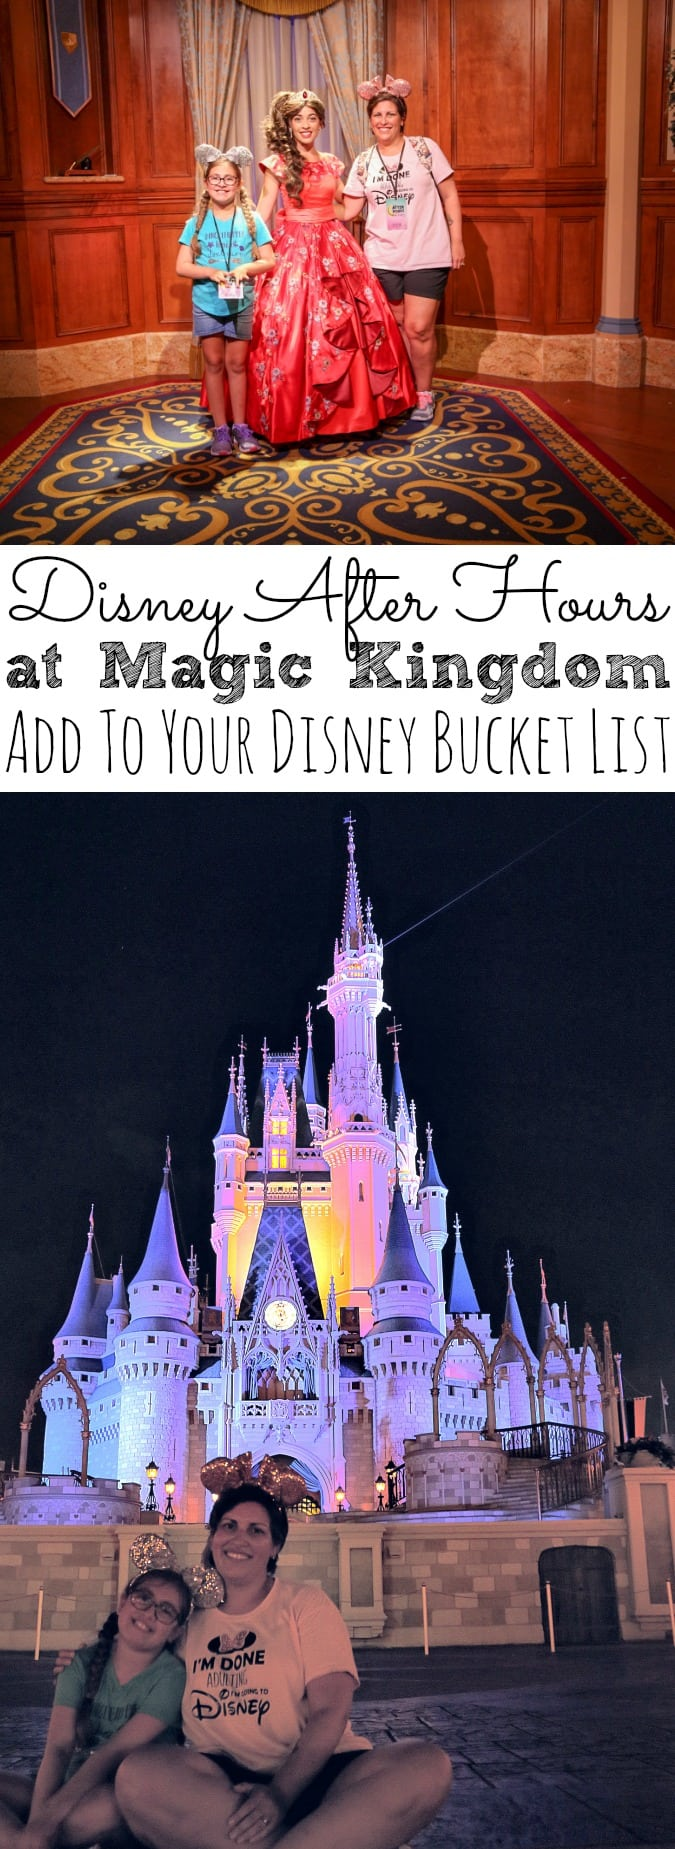 Visiting Disney this summer? Check out Disney After Hours At Magic Kingdom and why you Must Add To Your Walt Disney World Bucket List - #DisneyTravels #MagicKingdom #DisneyAfterHours #FamilyTravels simplytodaylife.com